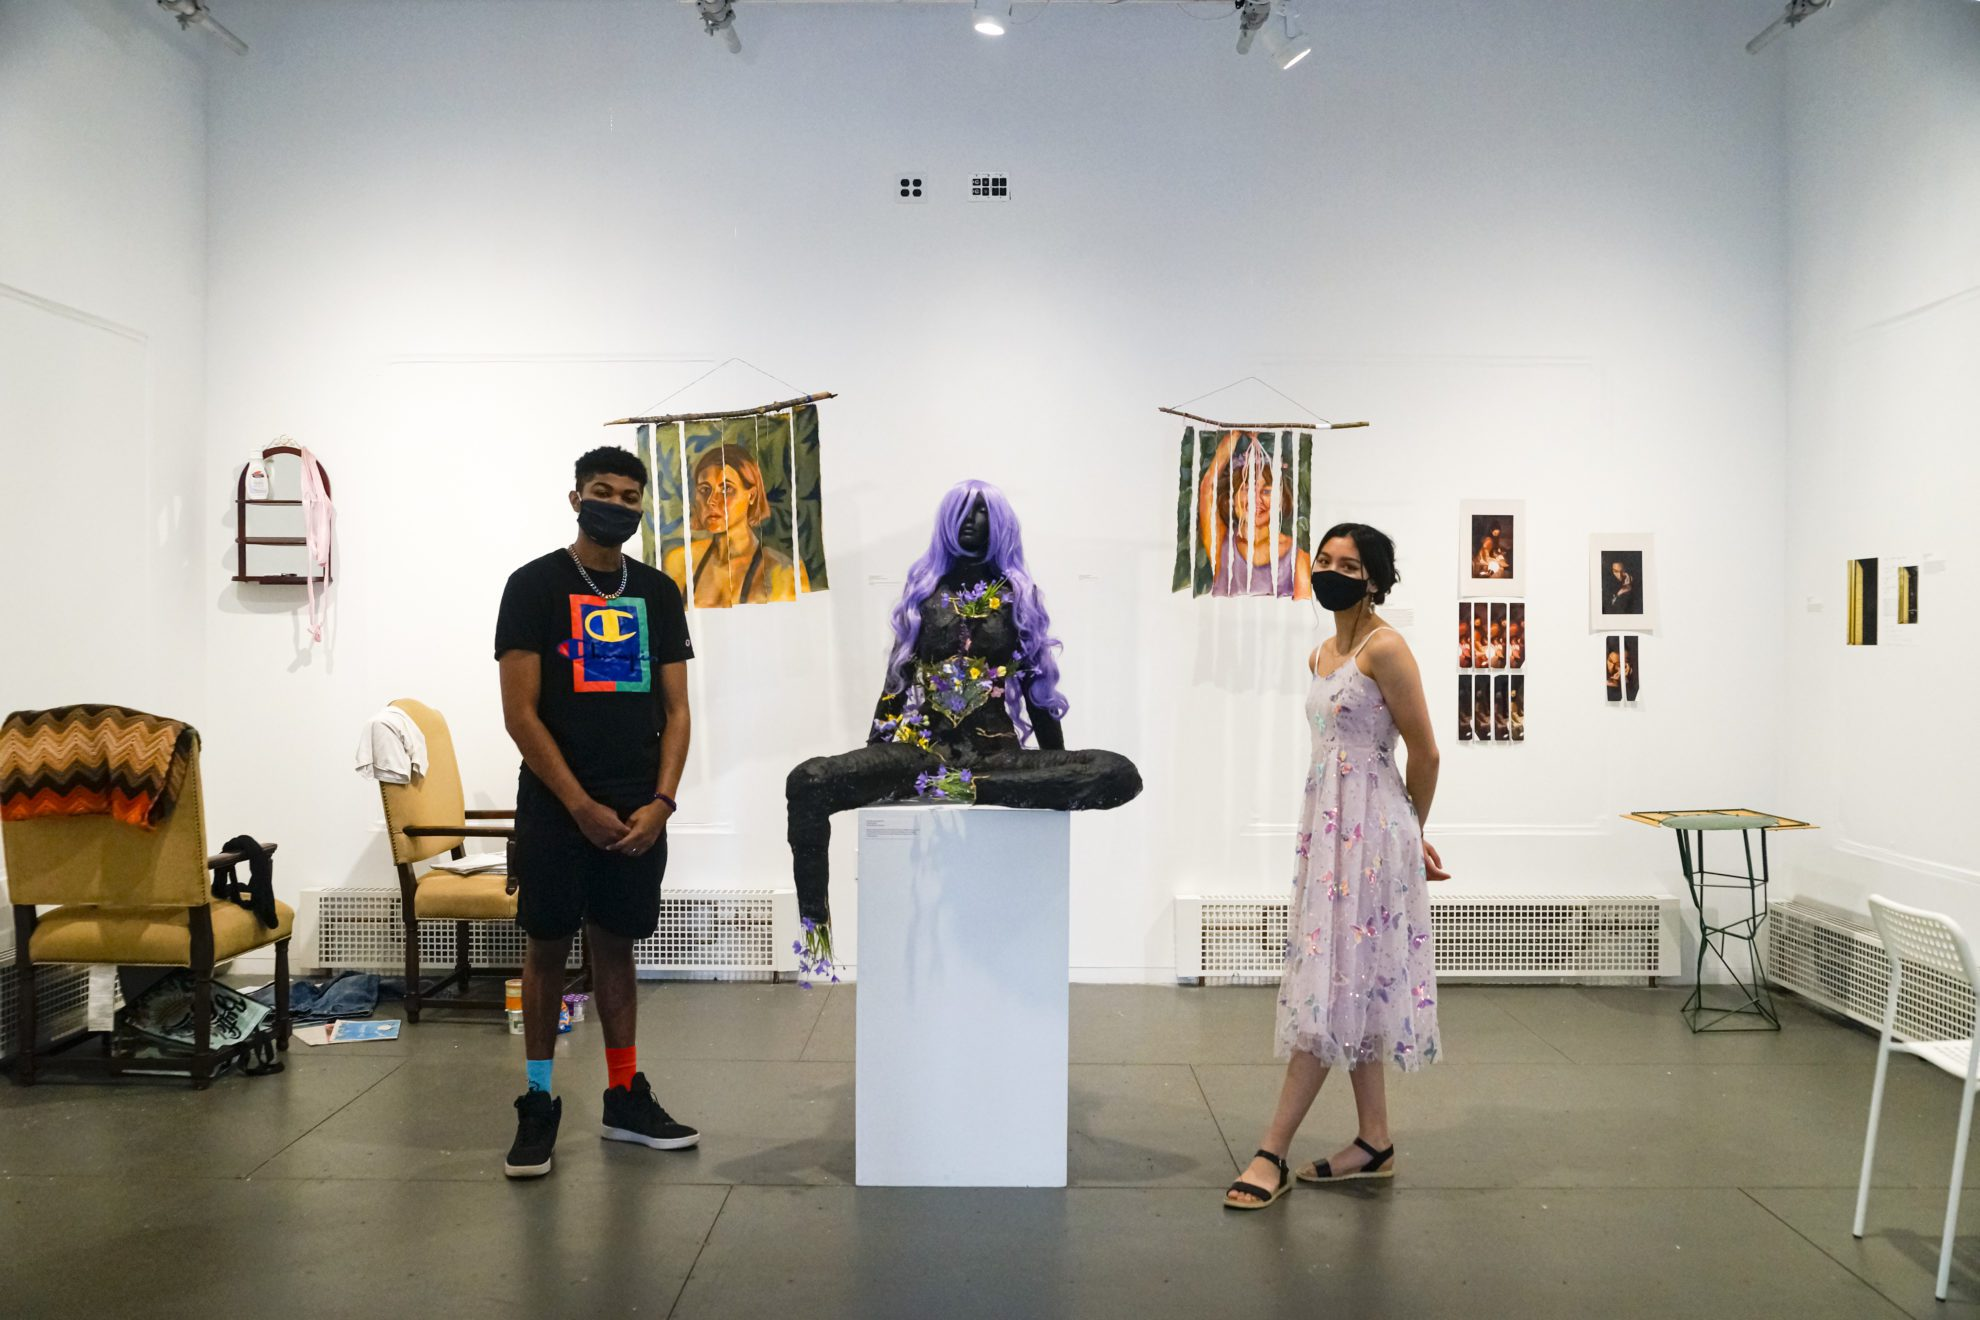 Jalen Martin '23 and Izzy Ray '23 stand in the student art center amidst the art pieces of In the Works, the exhibit they curated together.